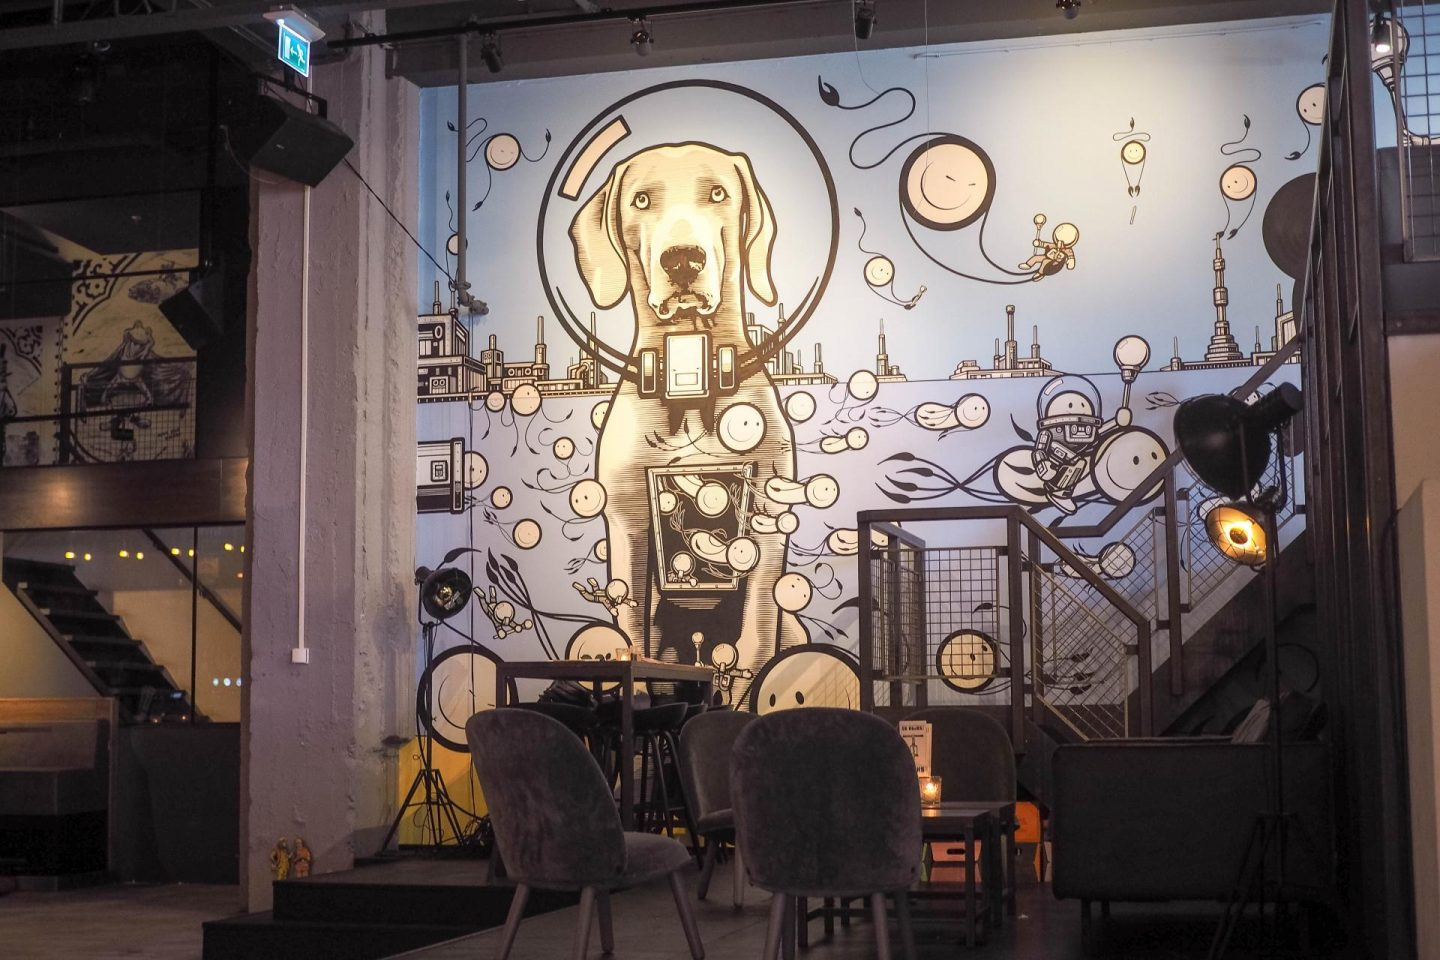 Admire the delicious food and street art interior of the Bar and Bikkesement De Bajes